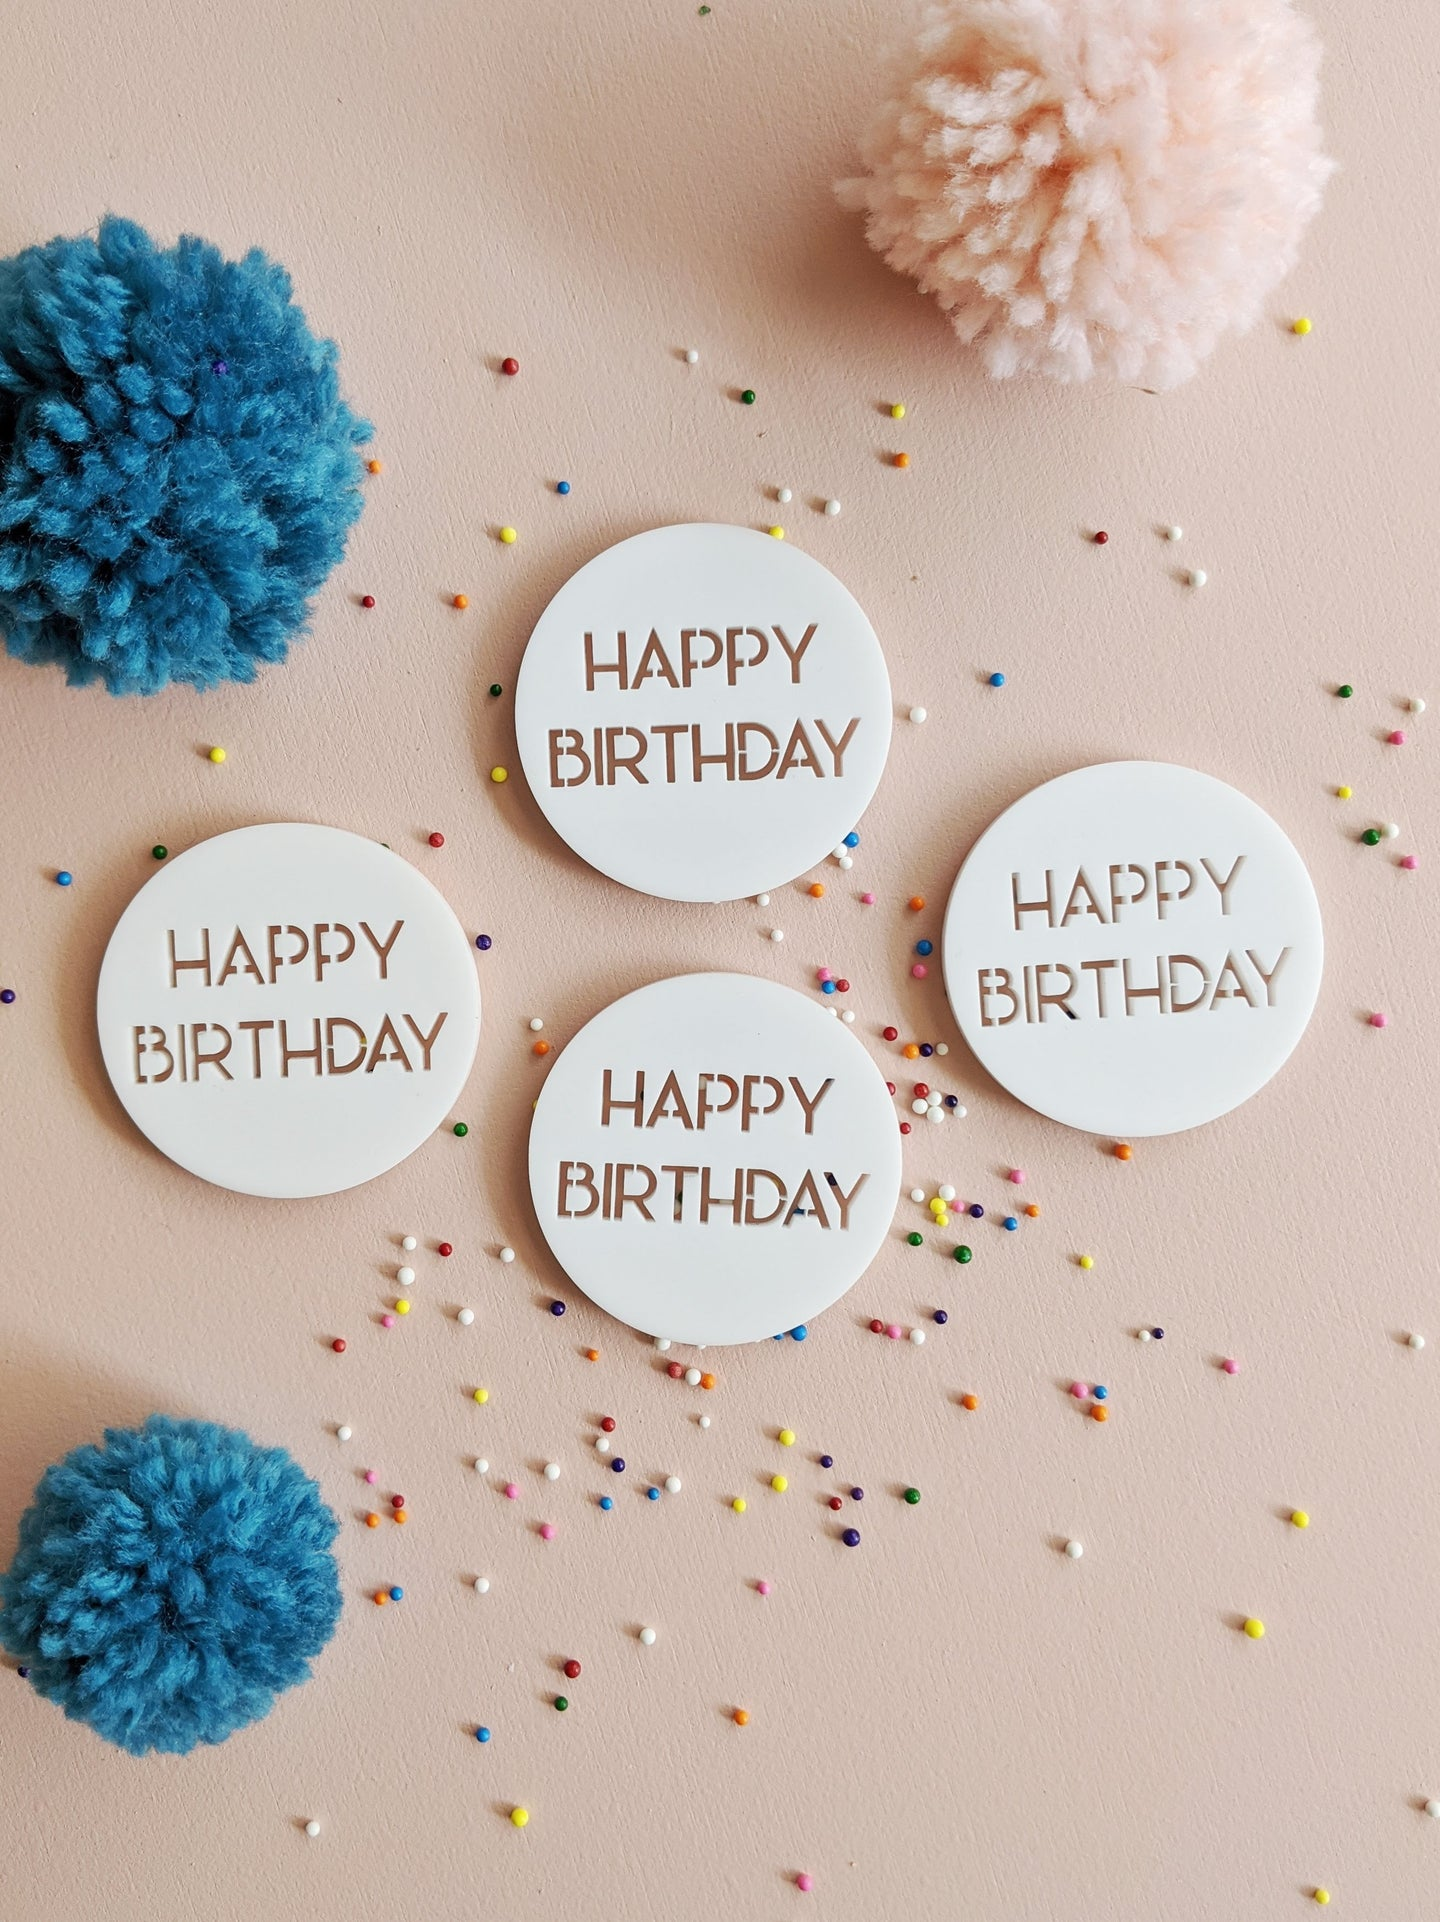 Happy Birthday - Round Dessert Charm